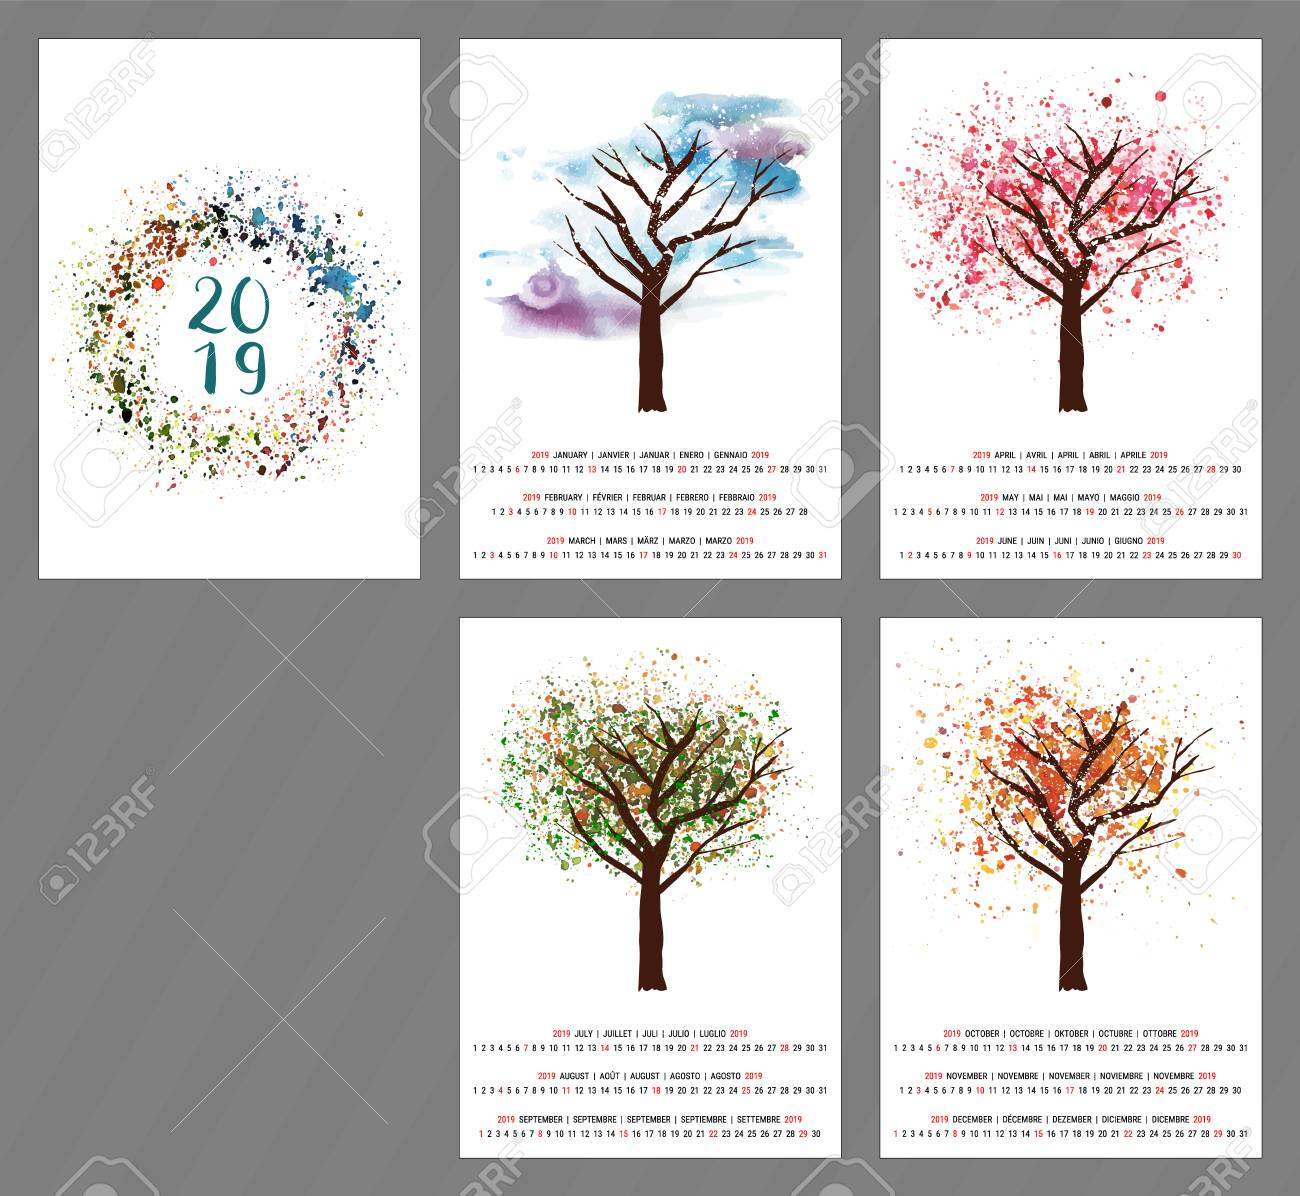 Calendario Julio 2019 Vector.Vector Calendar For Year 2019 With Watercolor Tree And Copy Space